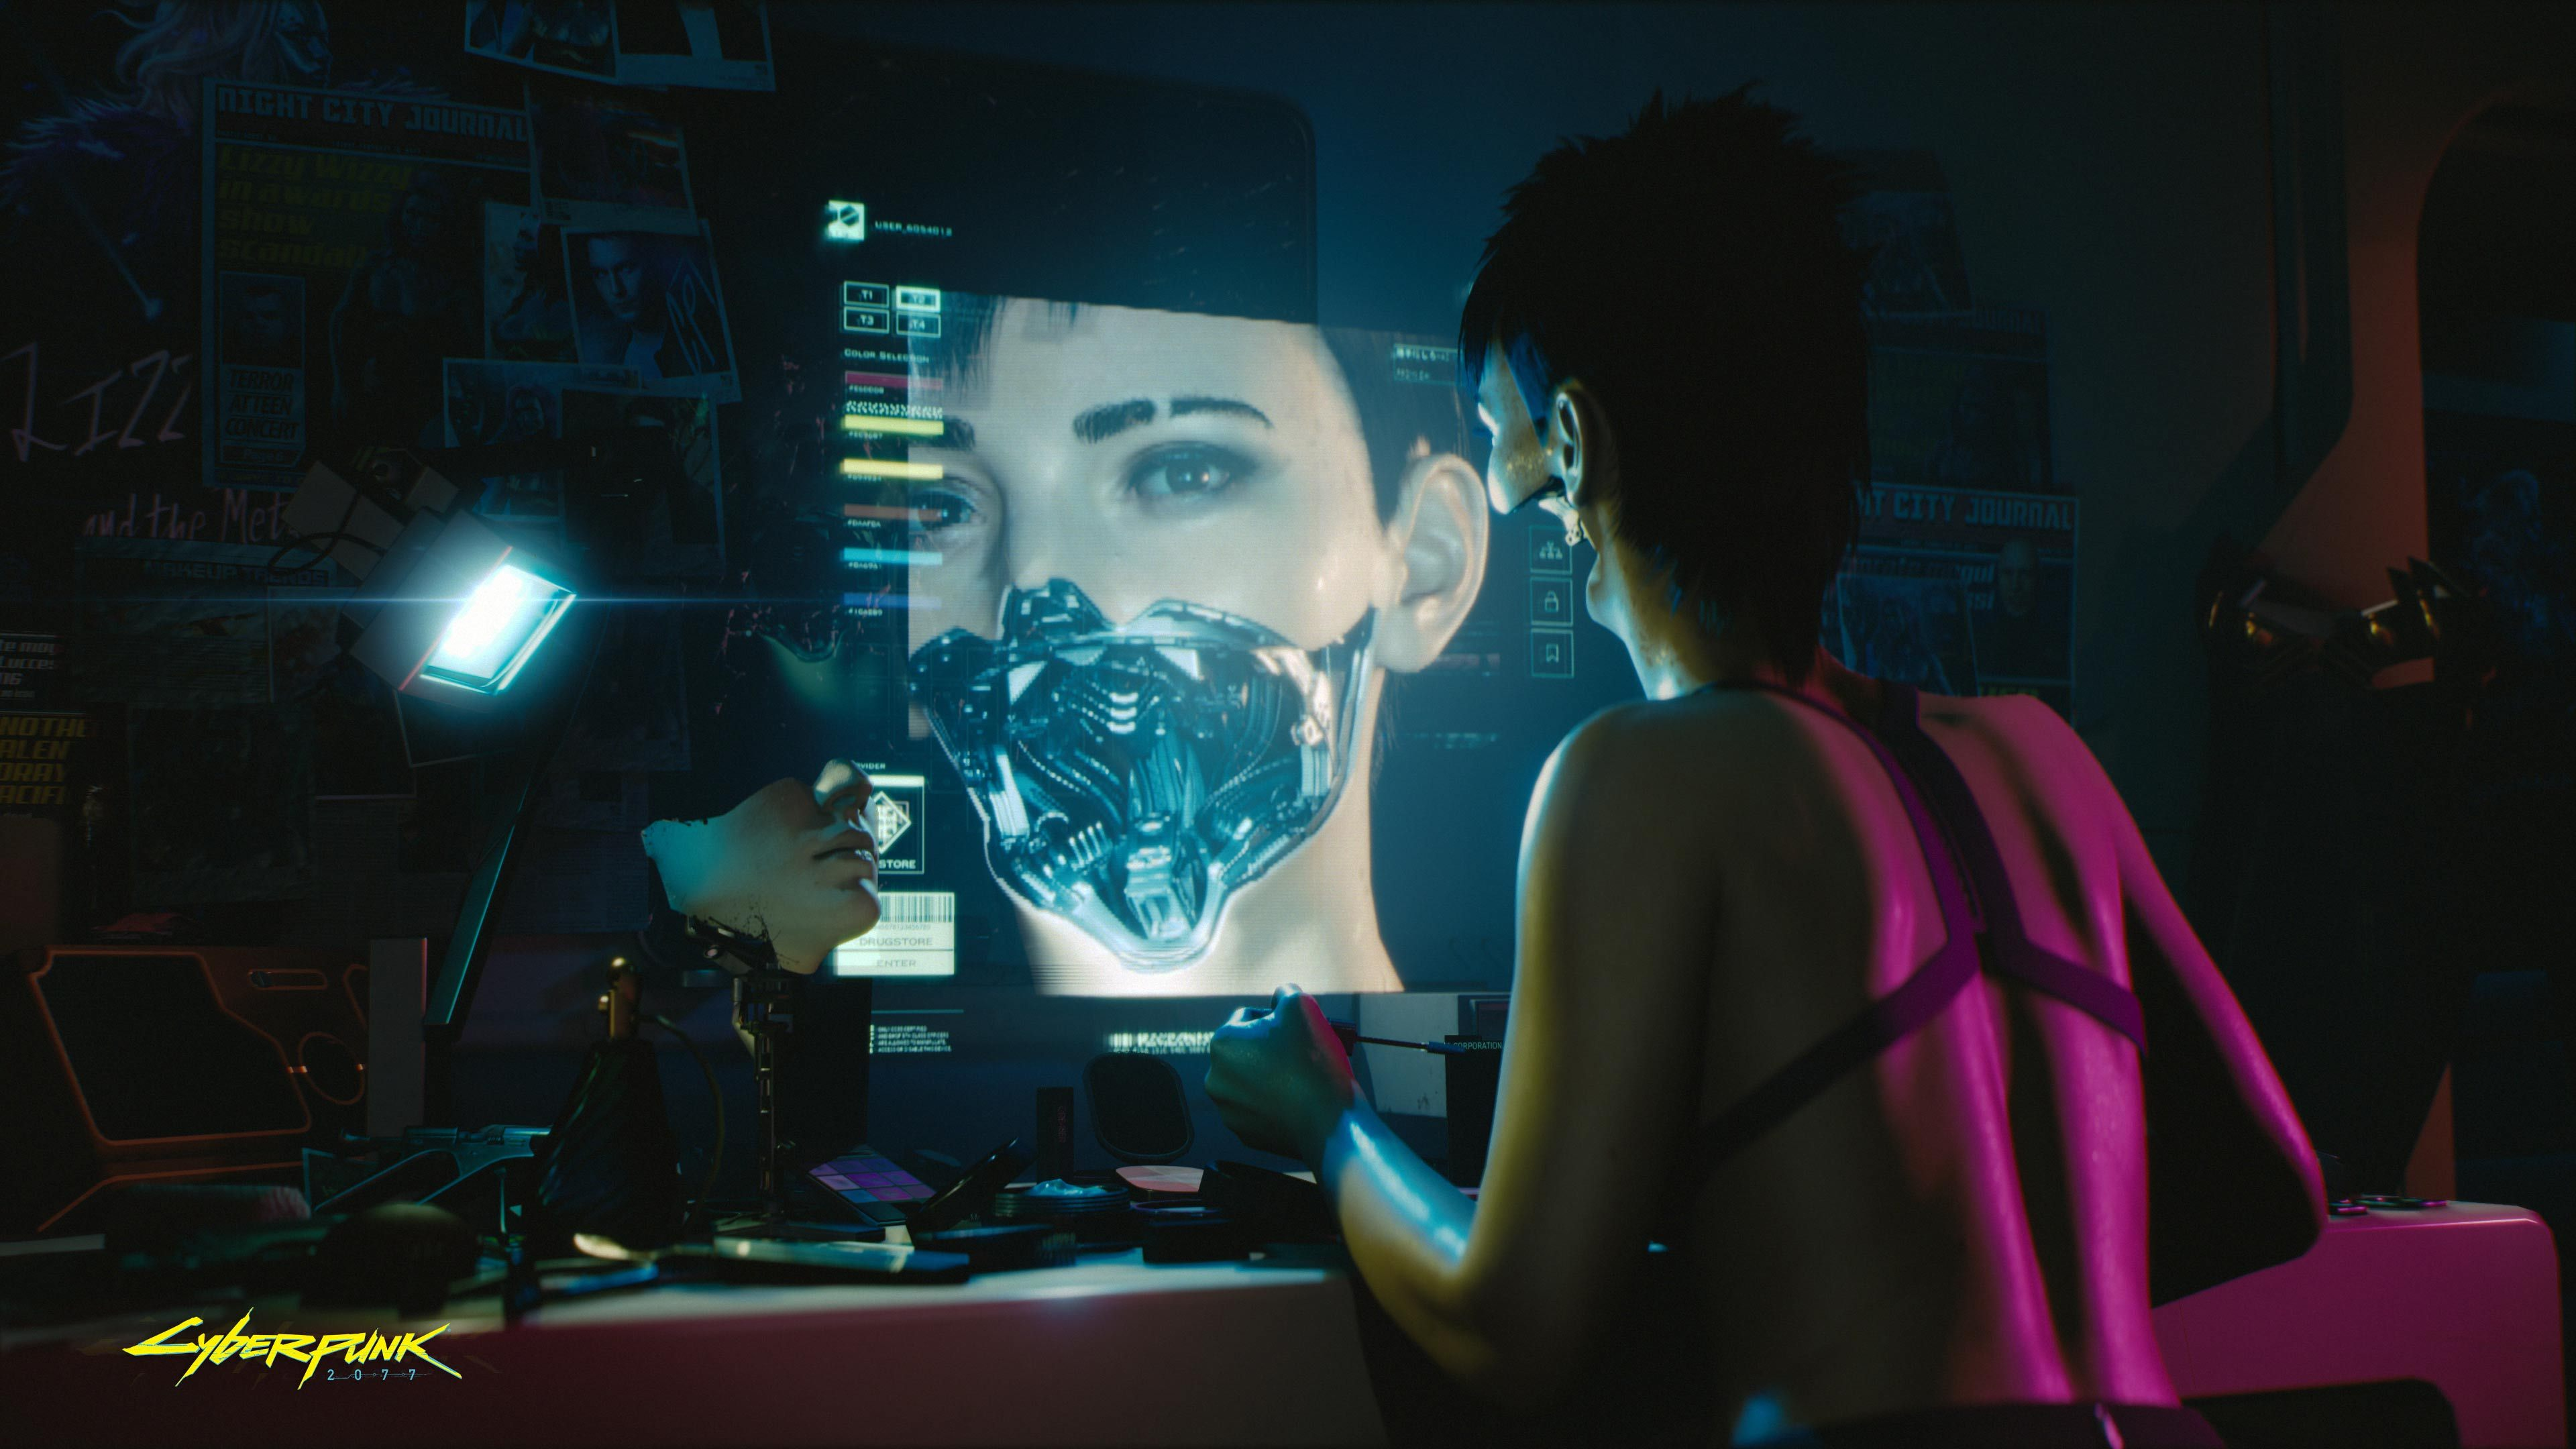 Cyberpunk 2077 E3 2019 CD Projekt Red